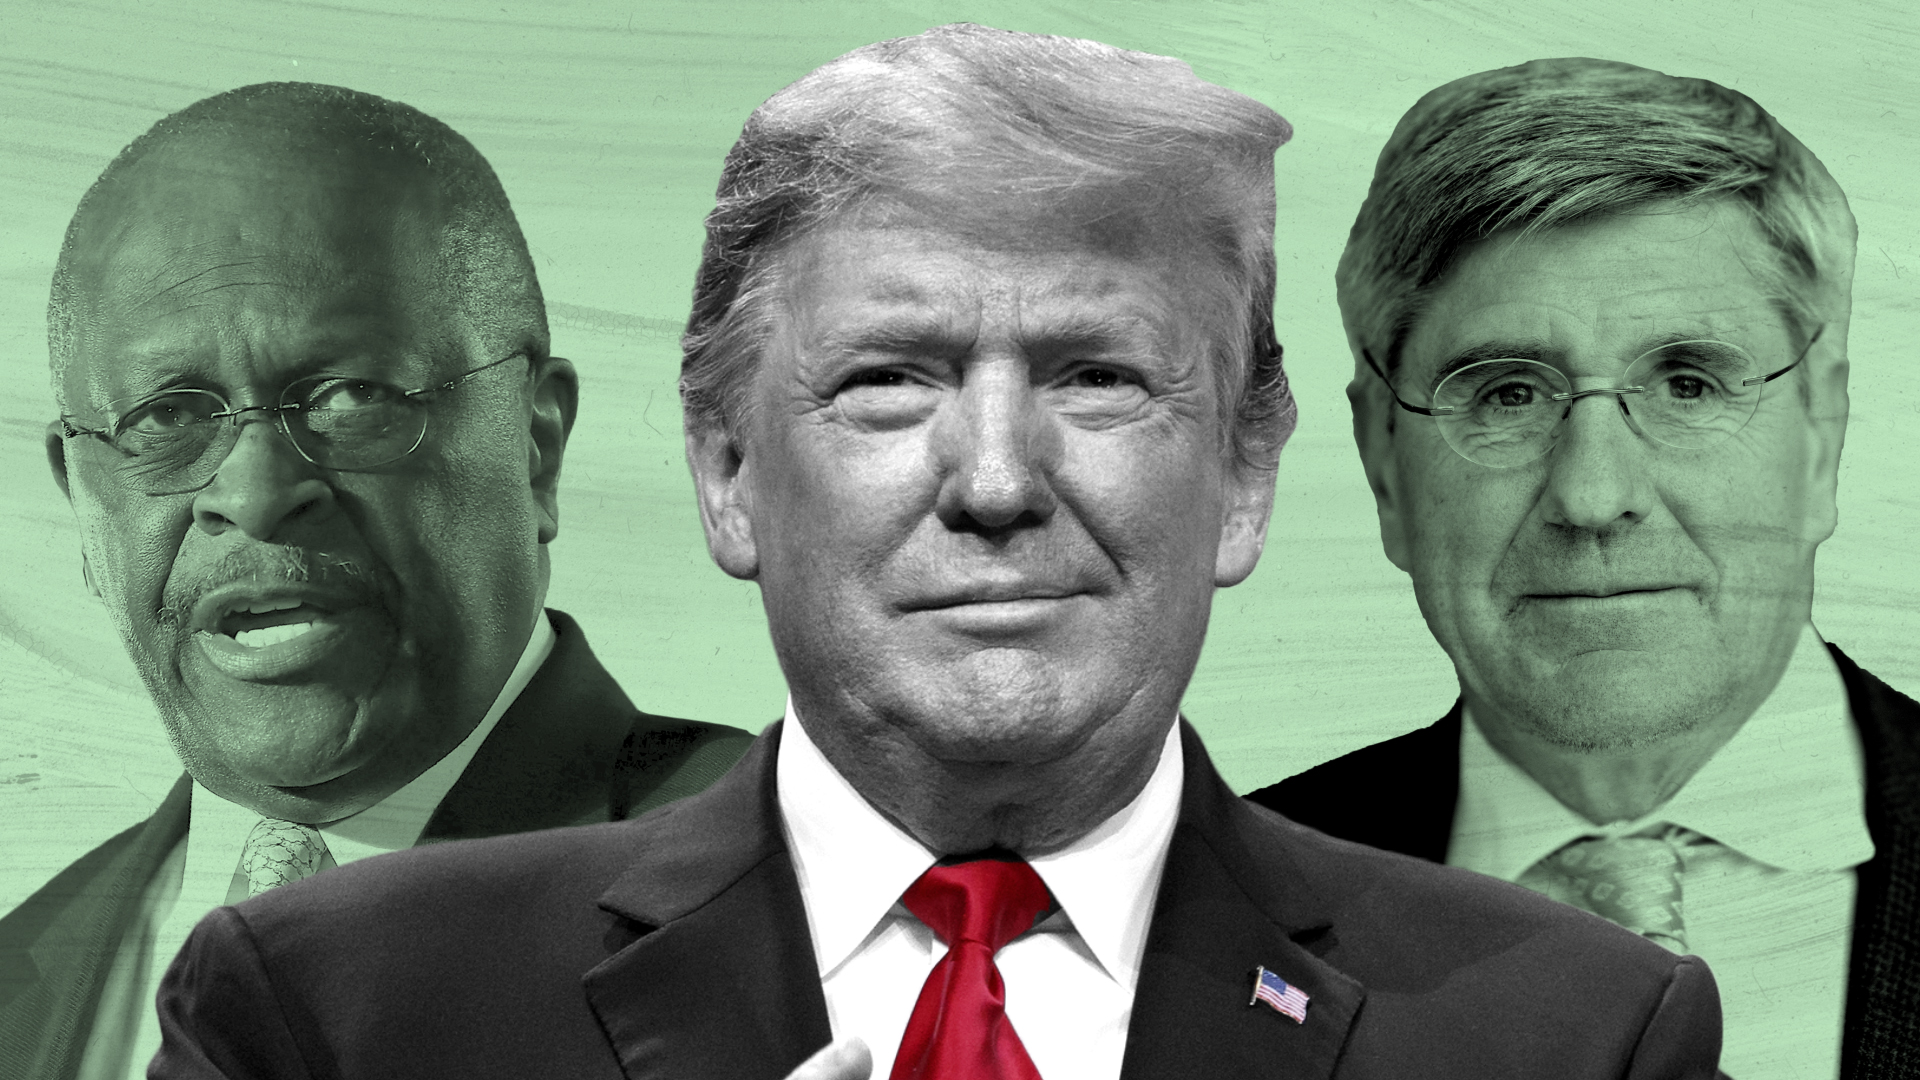 Stephen Moore needs a vacation from women